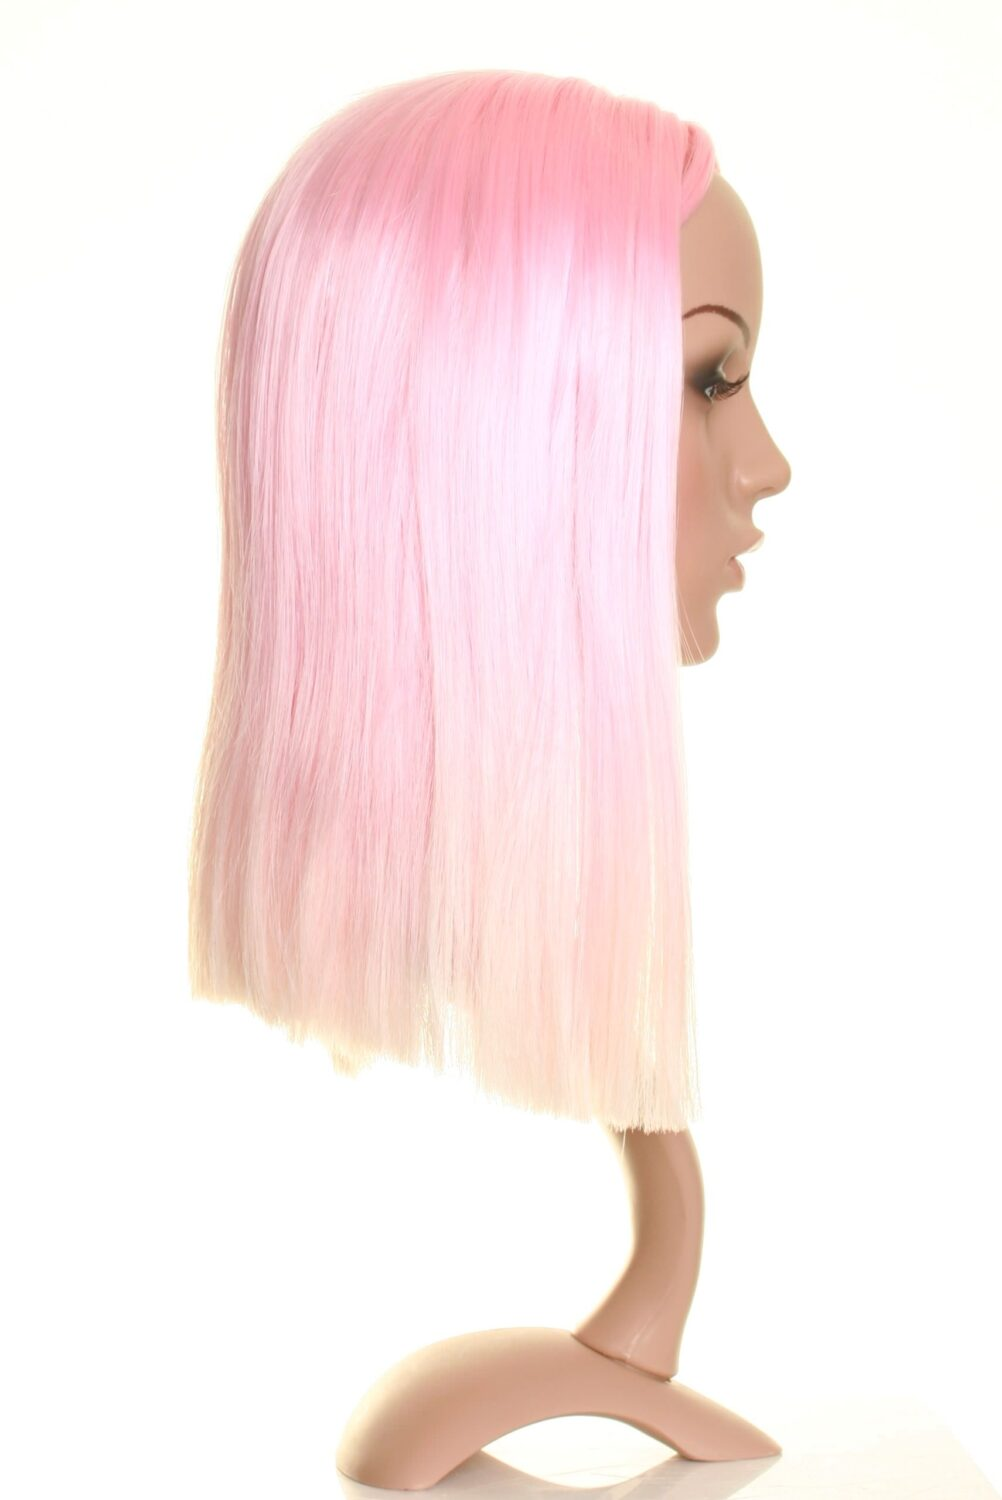 Light Pink Wig For Sale Costume And Wigs